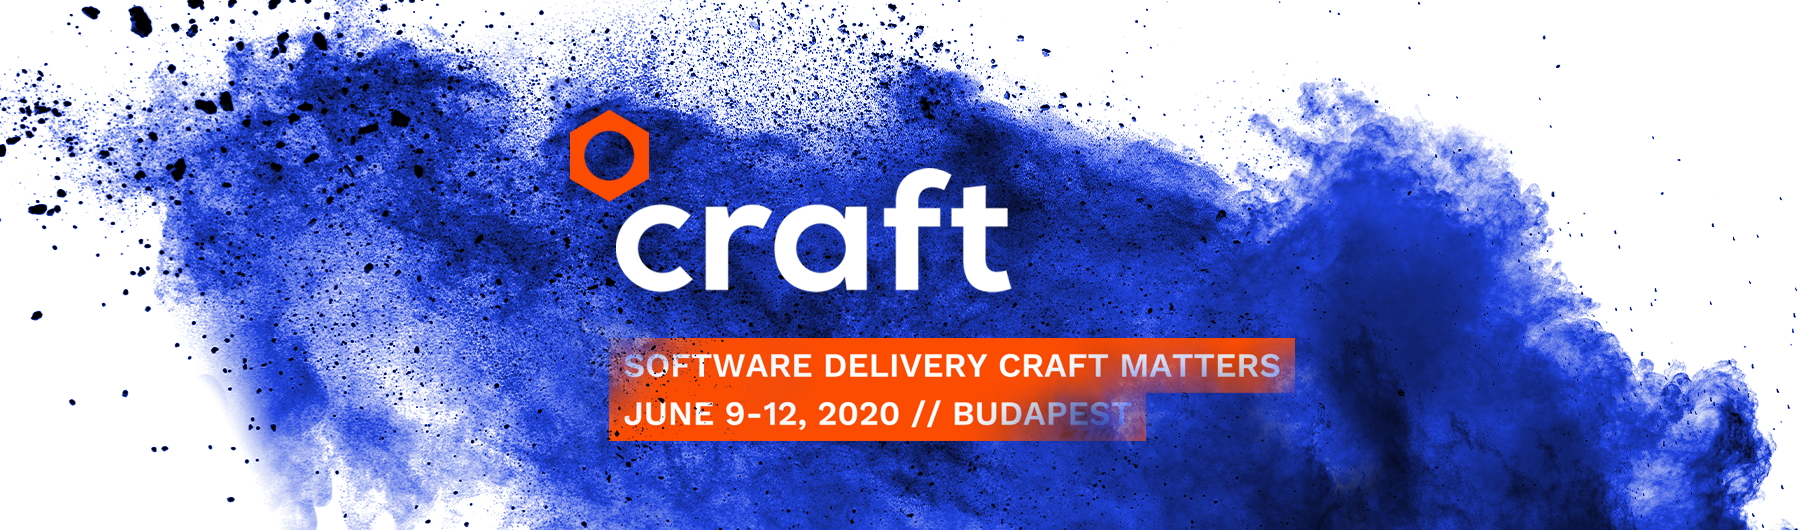 Craft Conference 2020